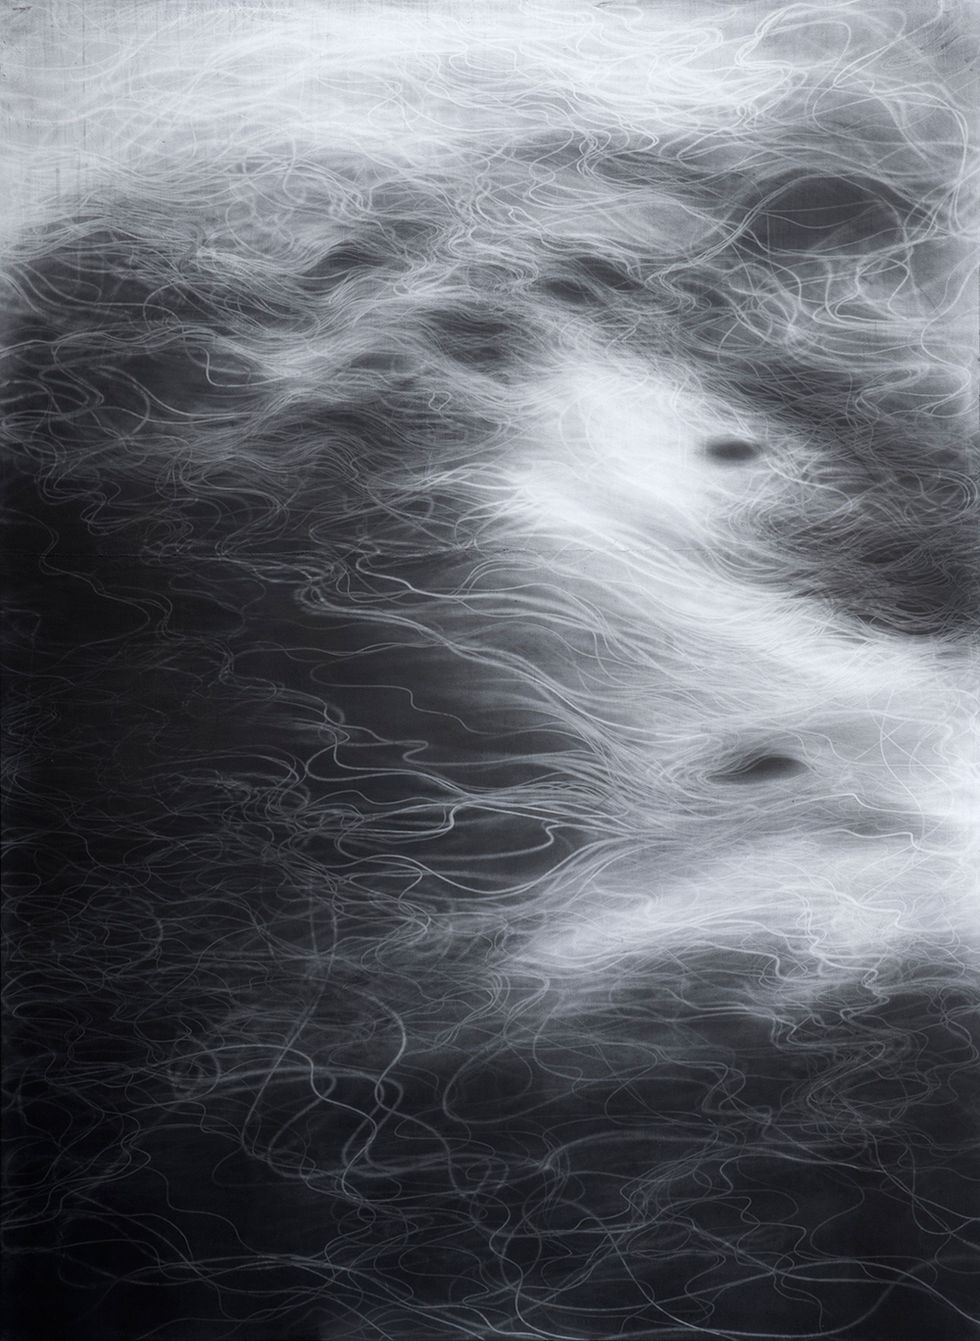 Waterscape 1302, 244x180cm, Graphite, water-drawing on Mulberry paper, 2013